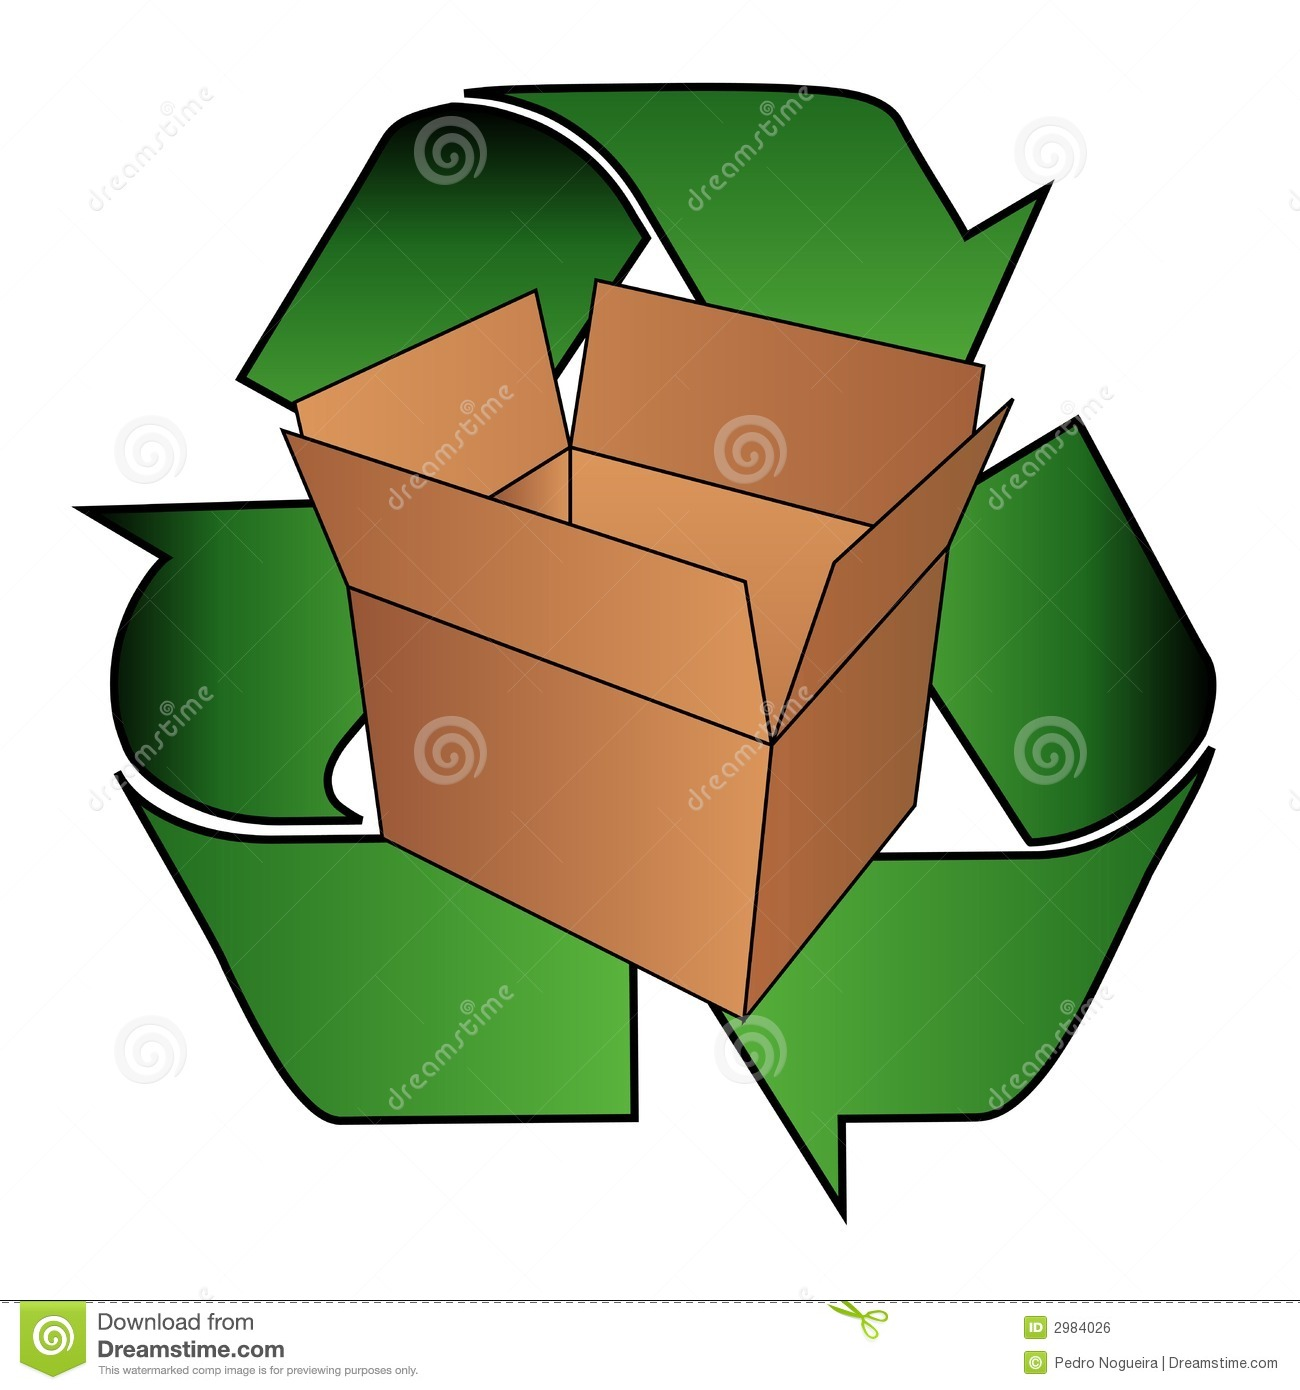 Royalty Free Stock Image Cardboard Box Recycle Symbol Image2984026 on Green Environmental Clip Art